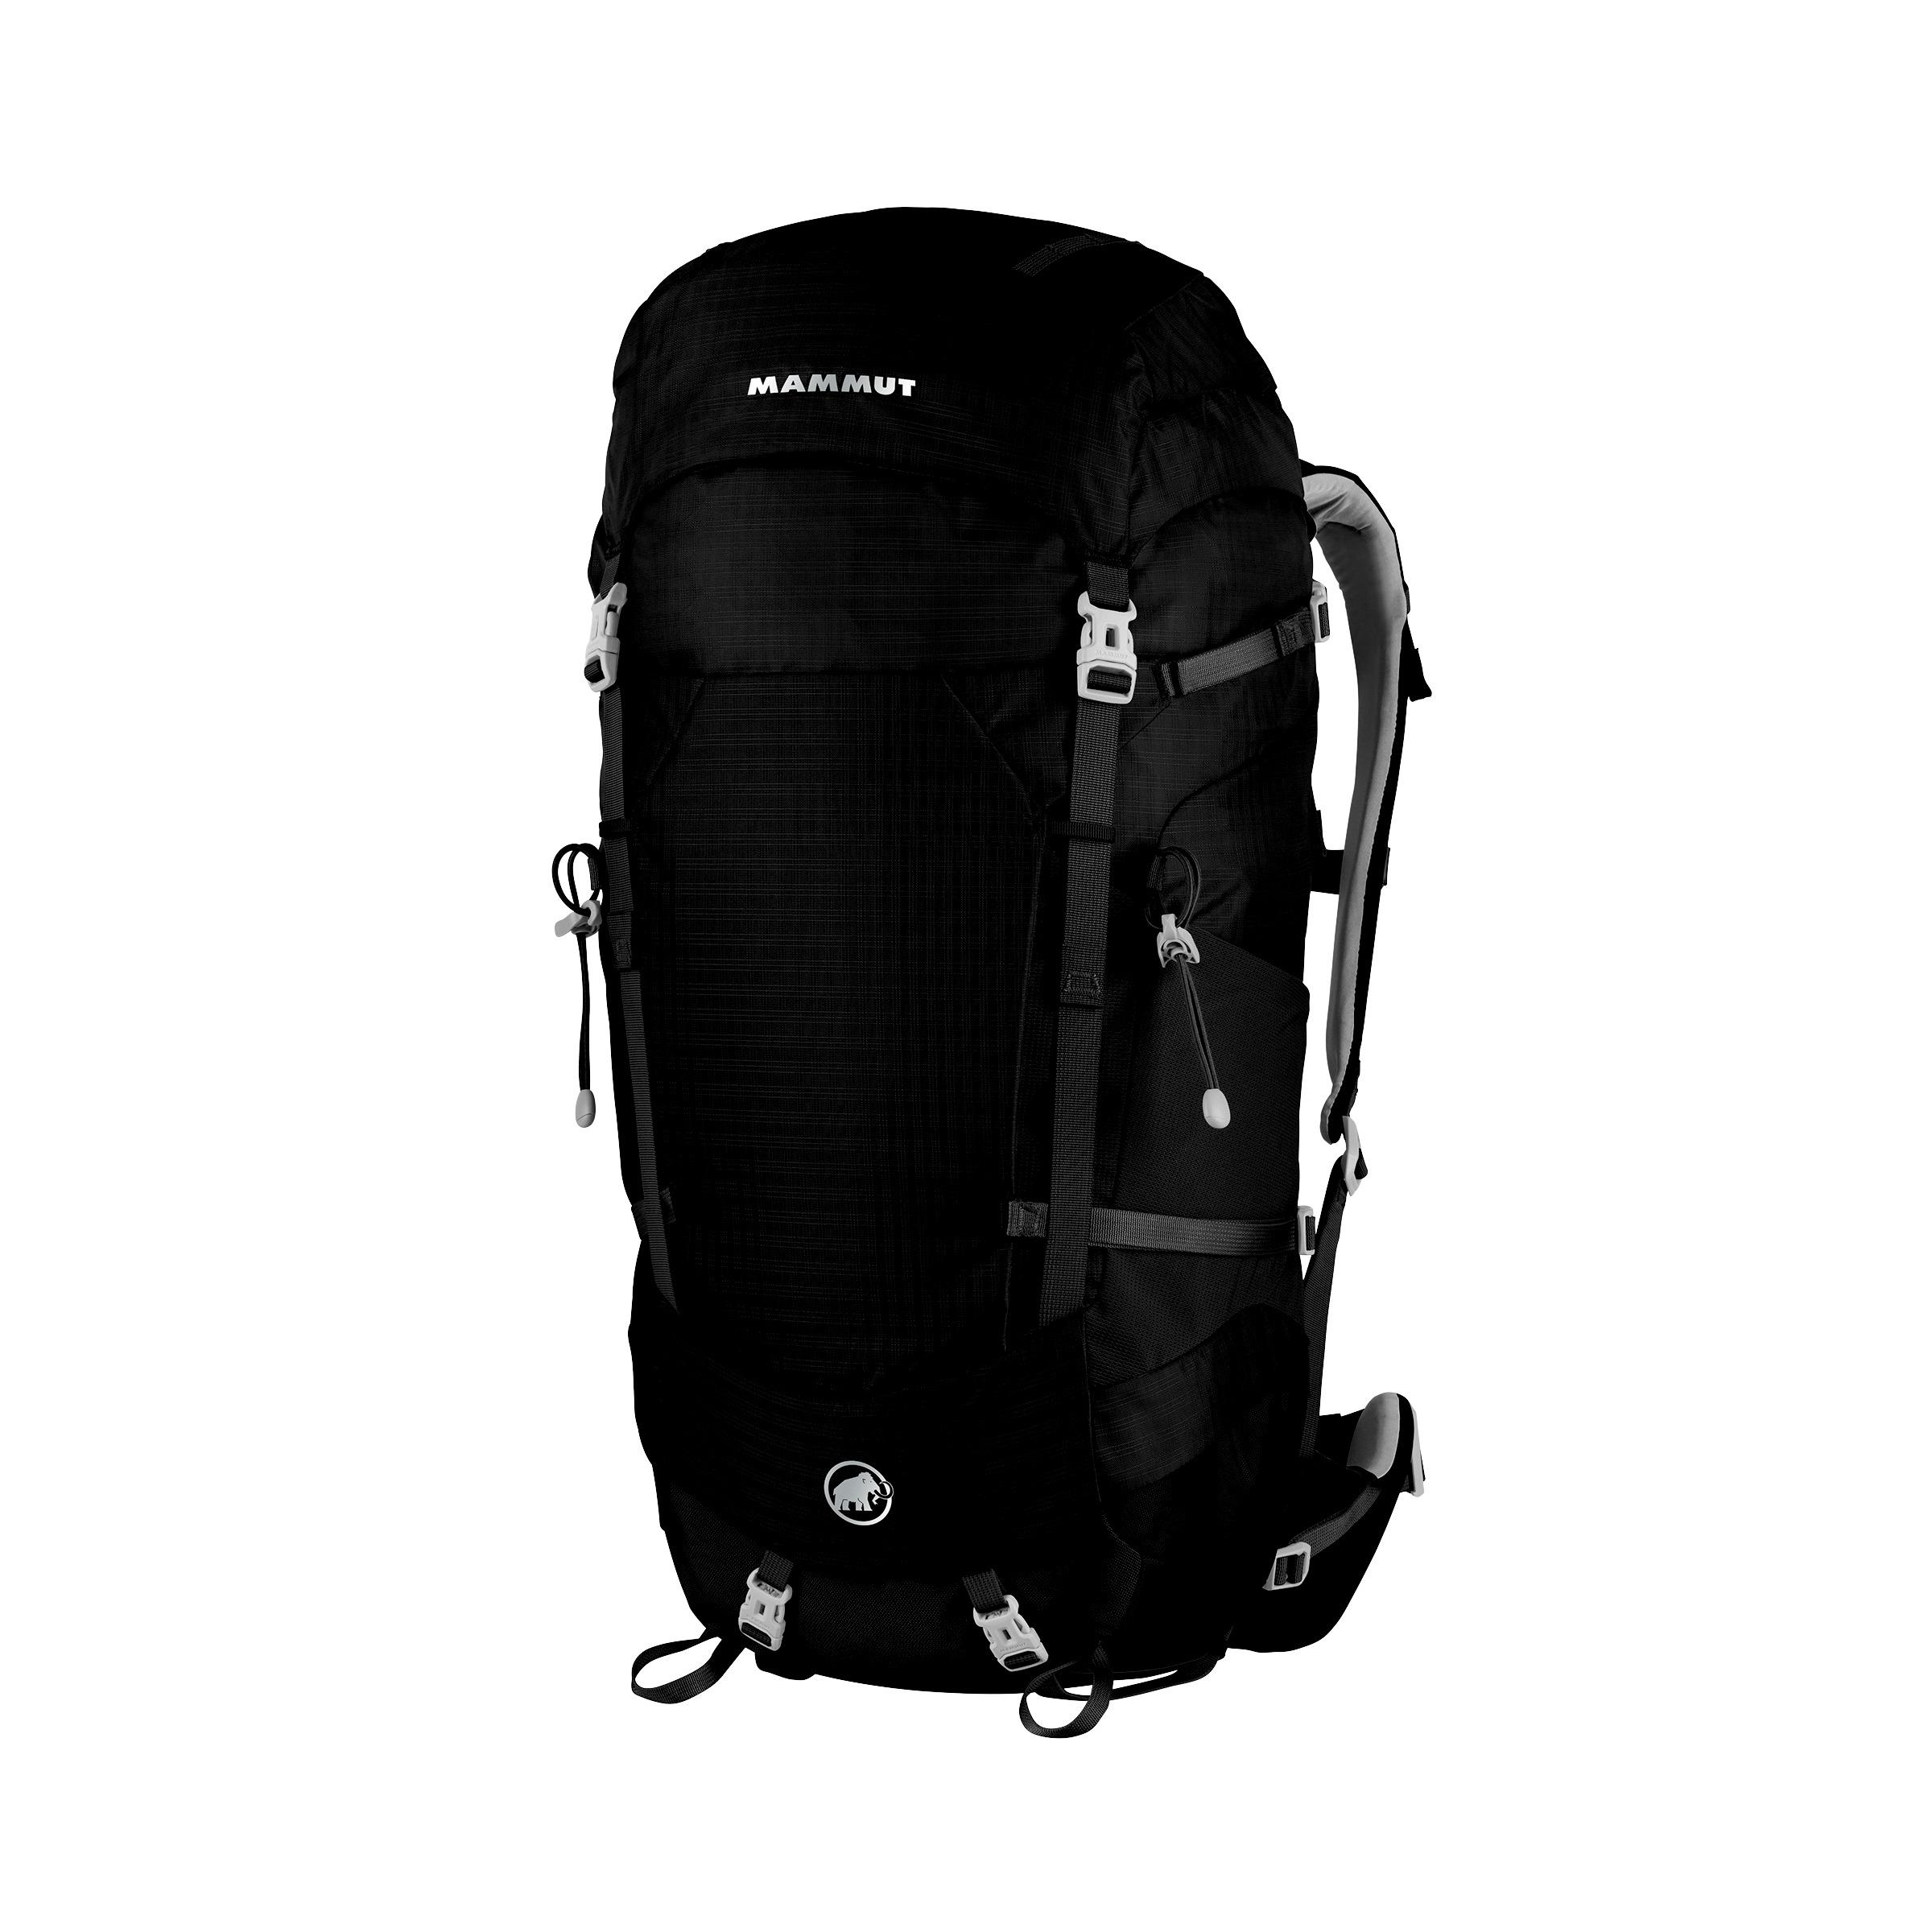 Mammut Lithium Crest(black) (50+7l) By Adventure 21.